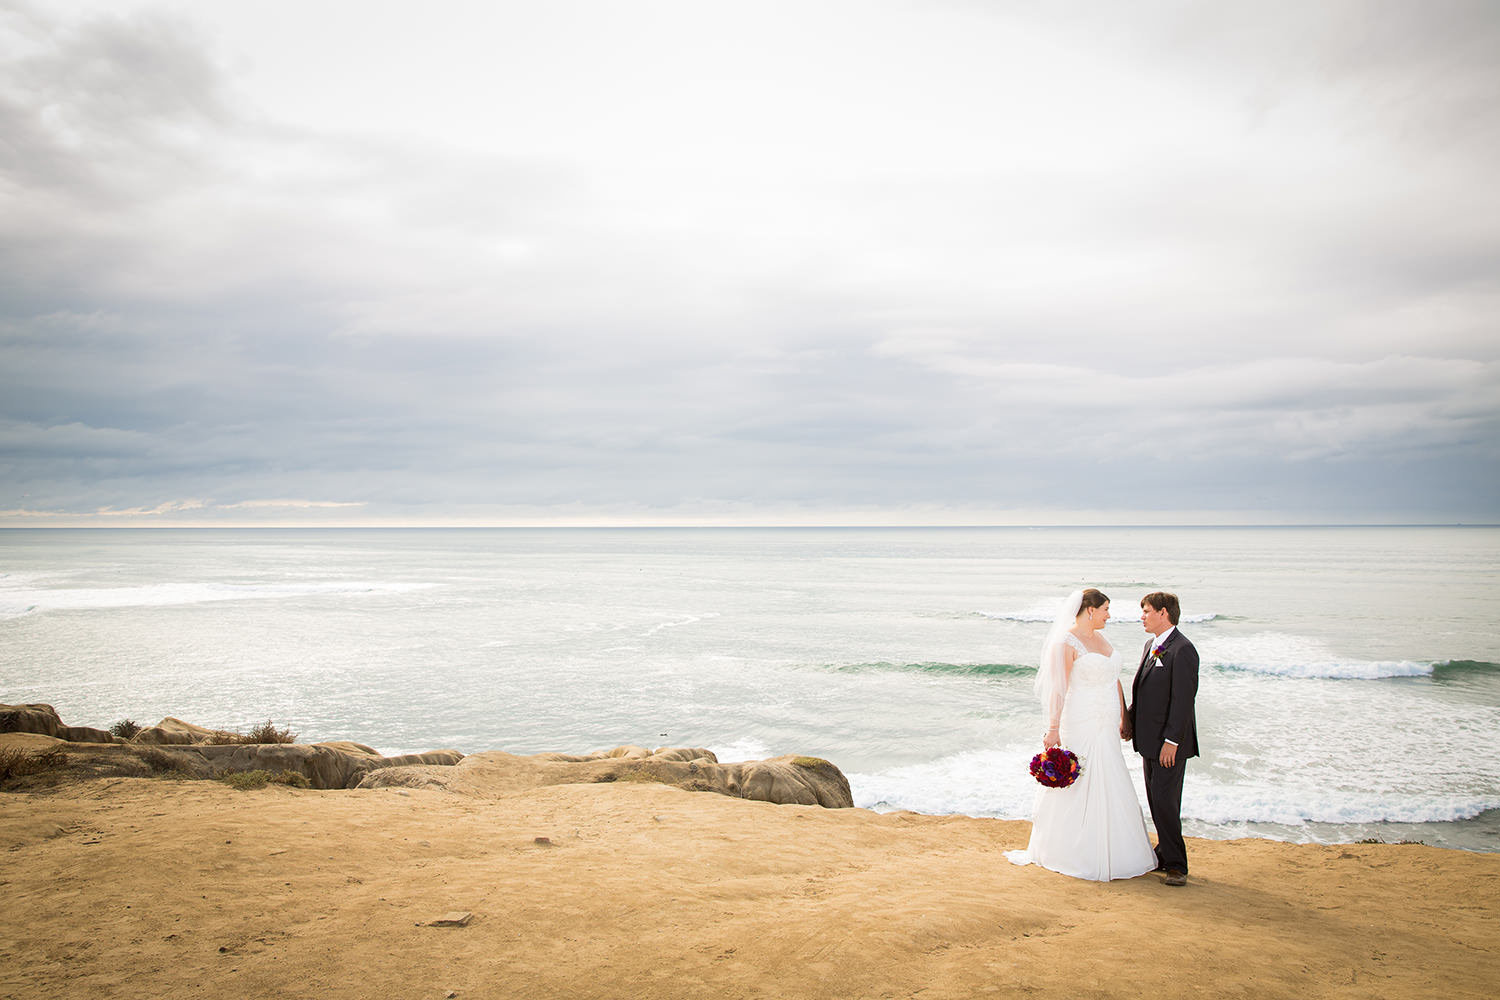 bride and groom with ocean in back ground